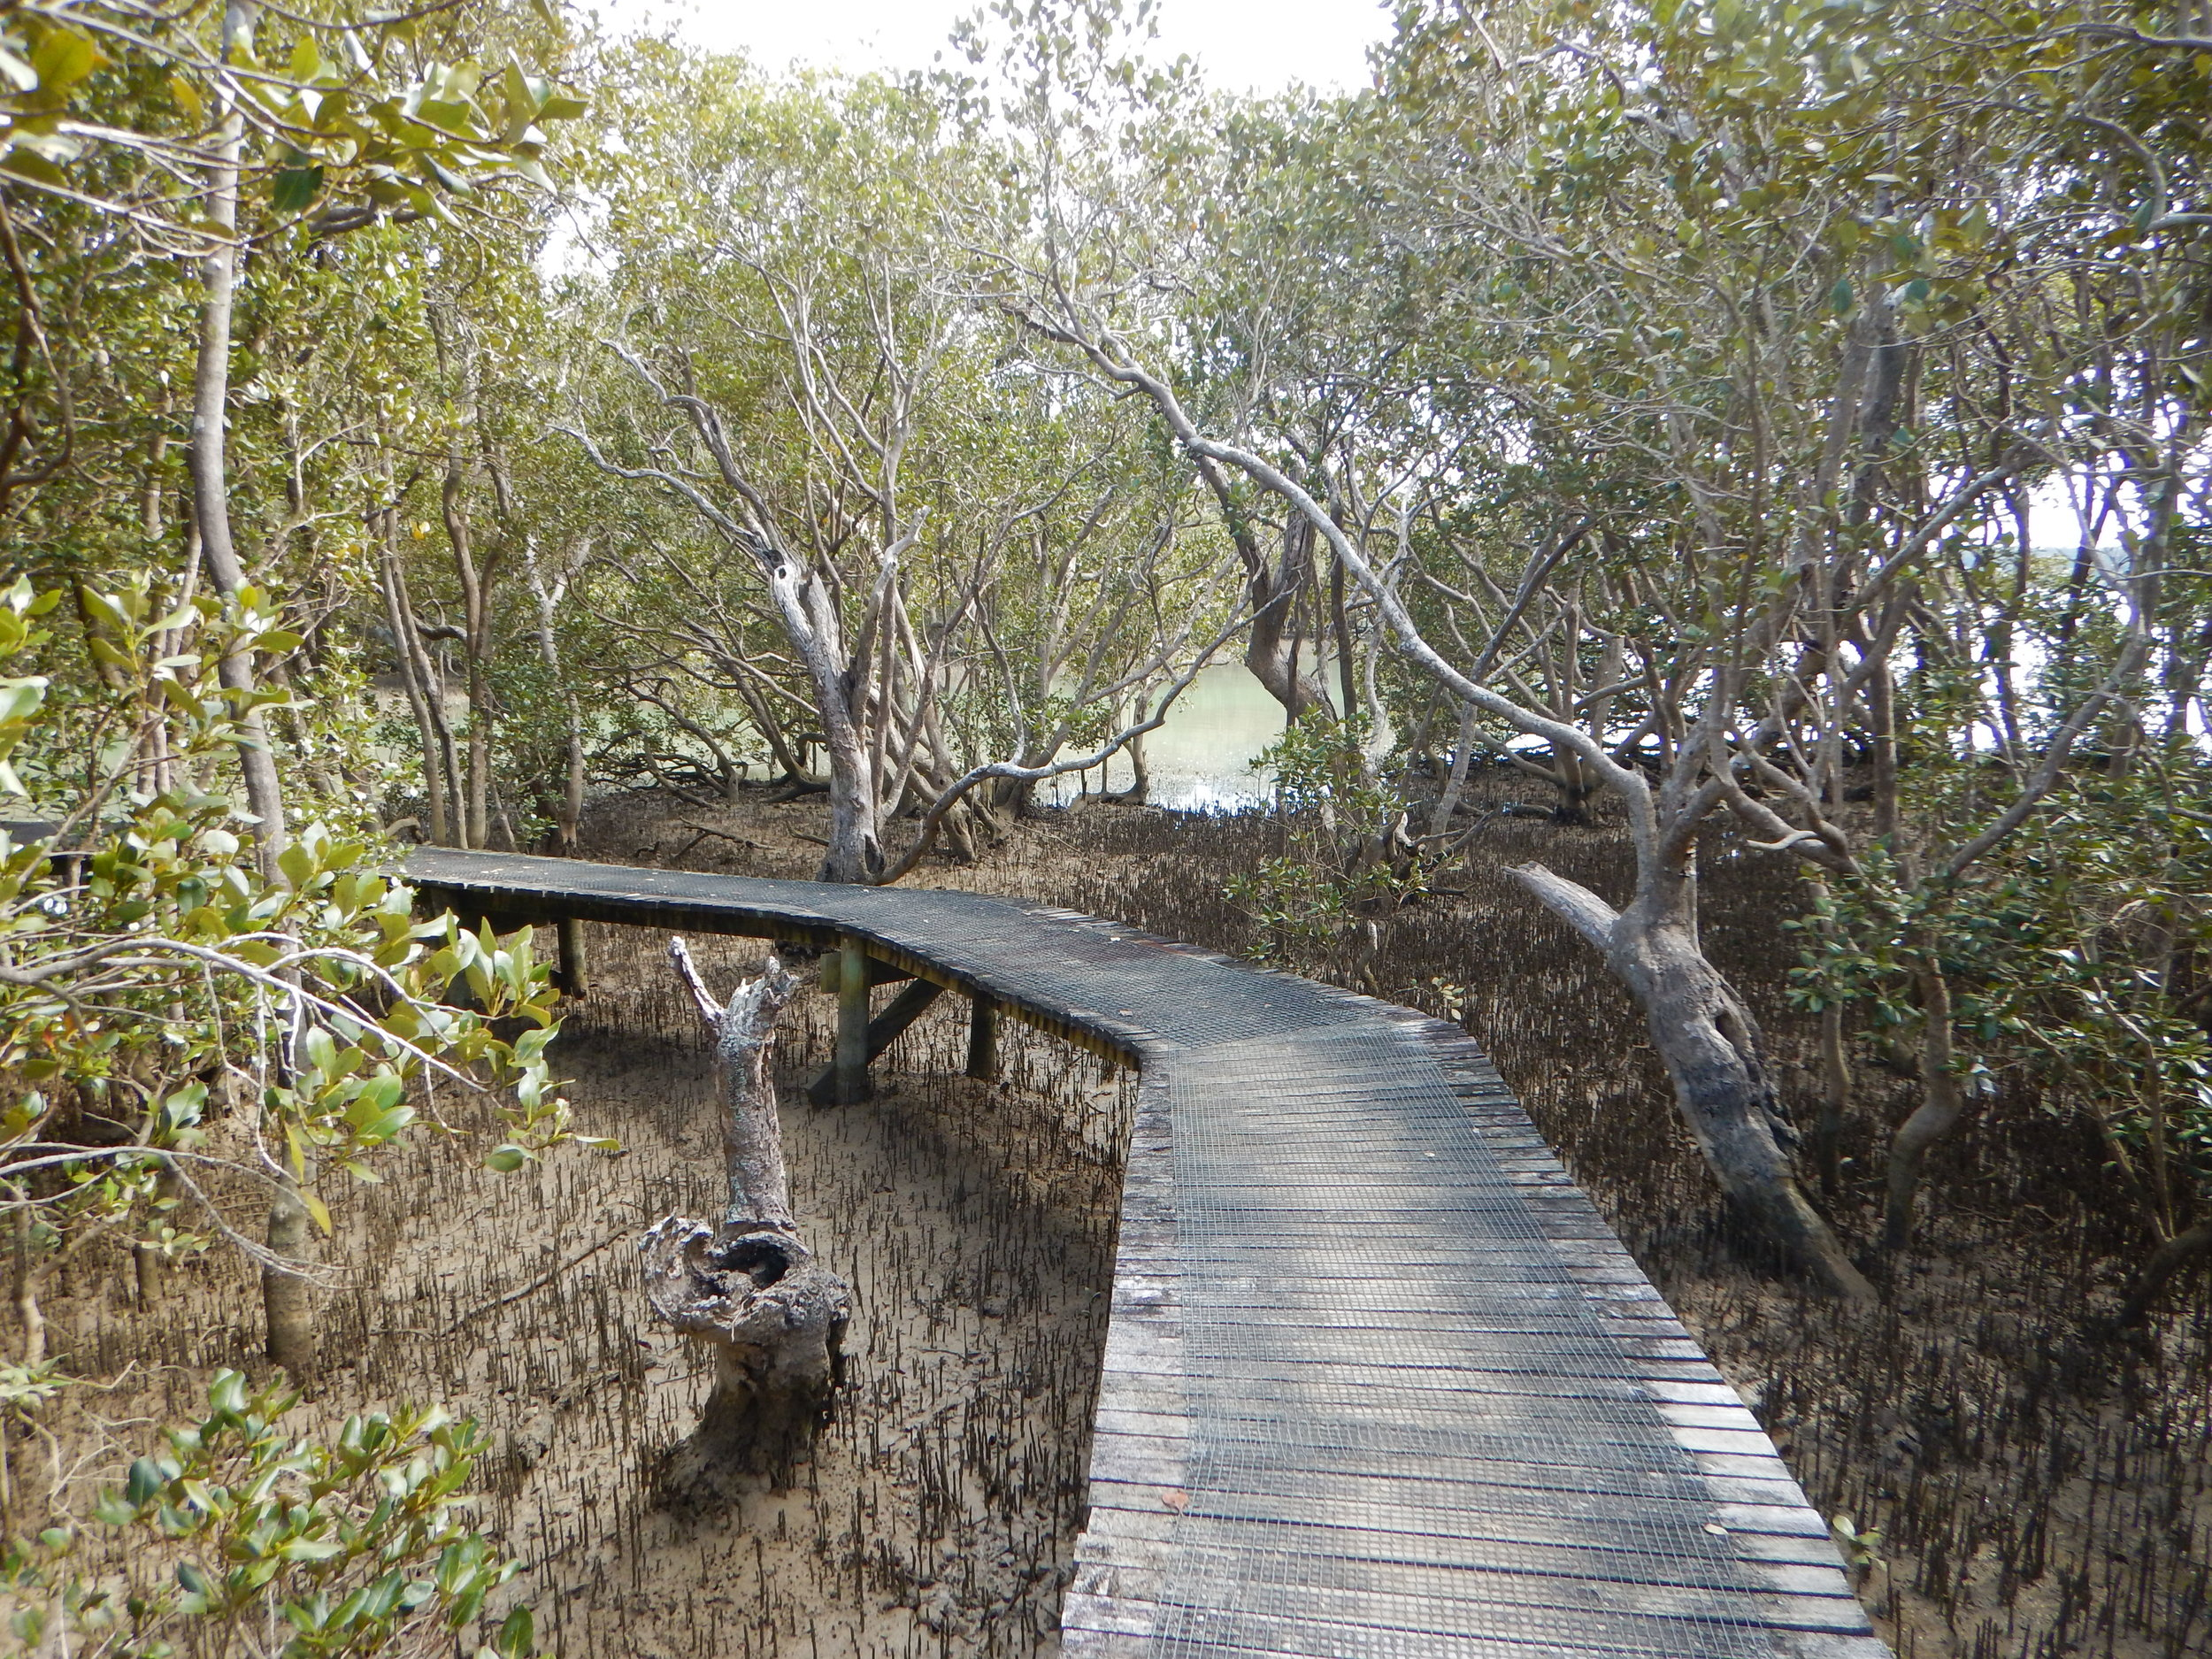 Boardwalk through the mangroves.